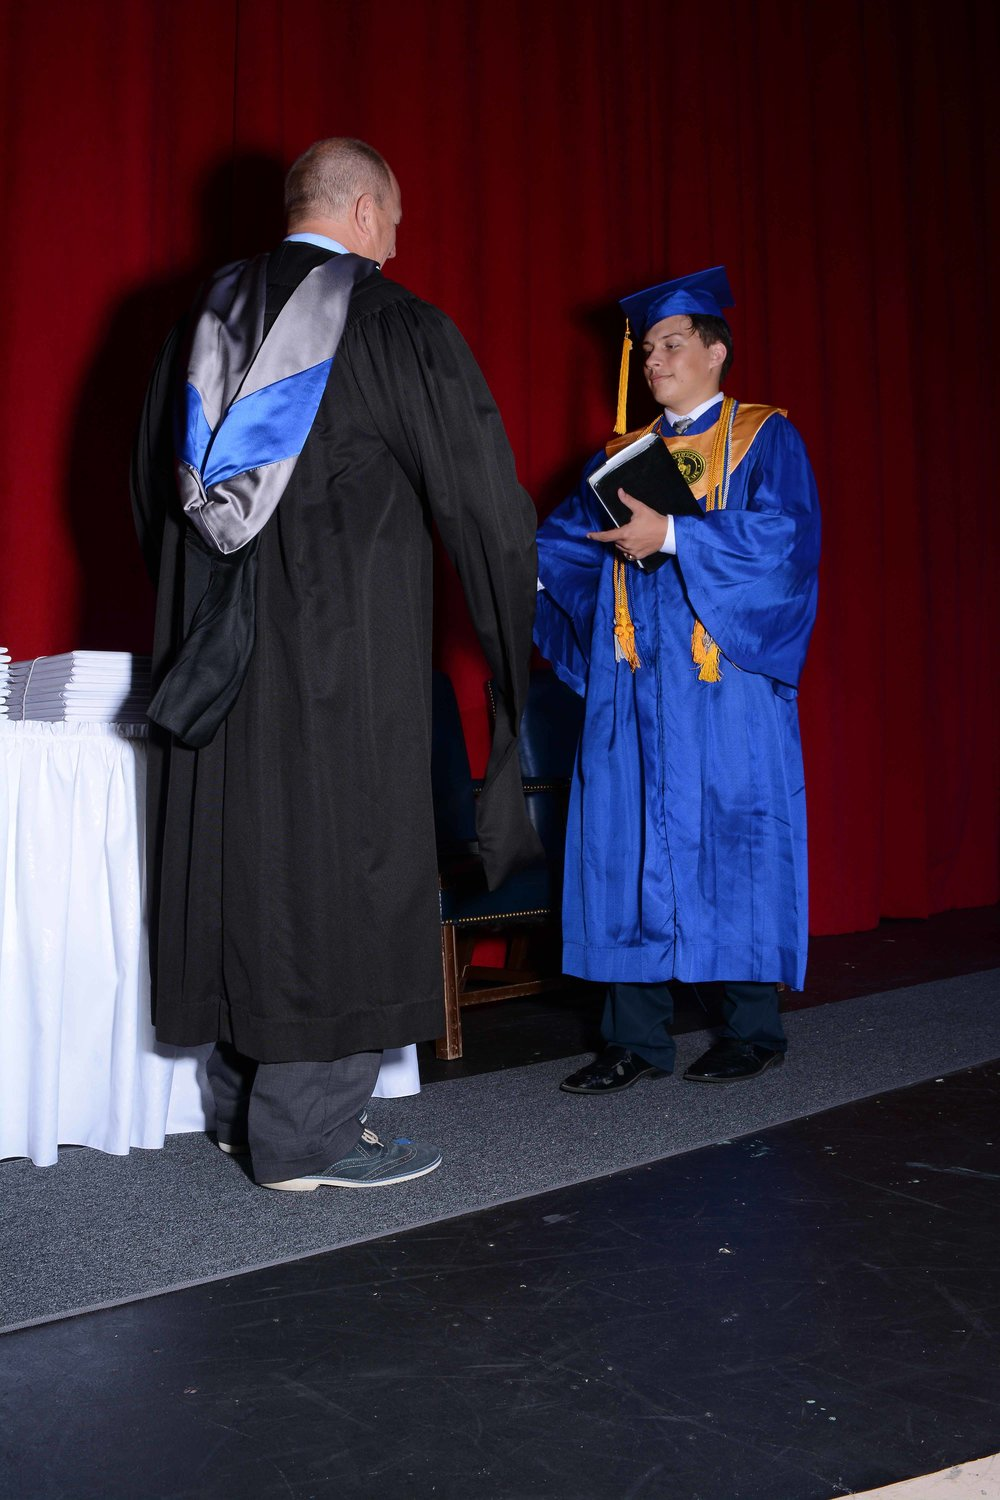 May14 Commencement43.jpg